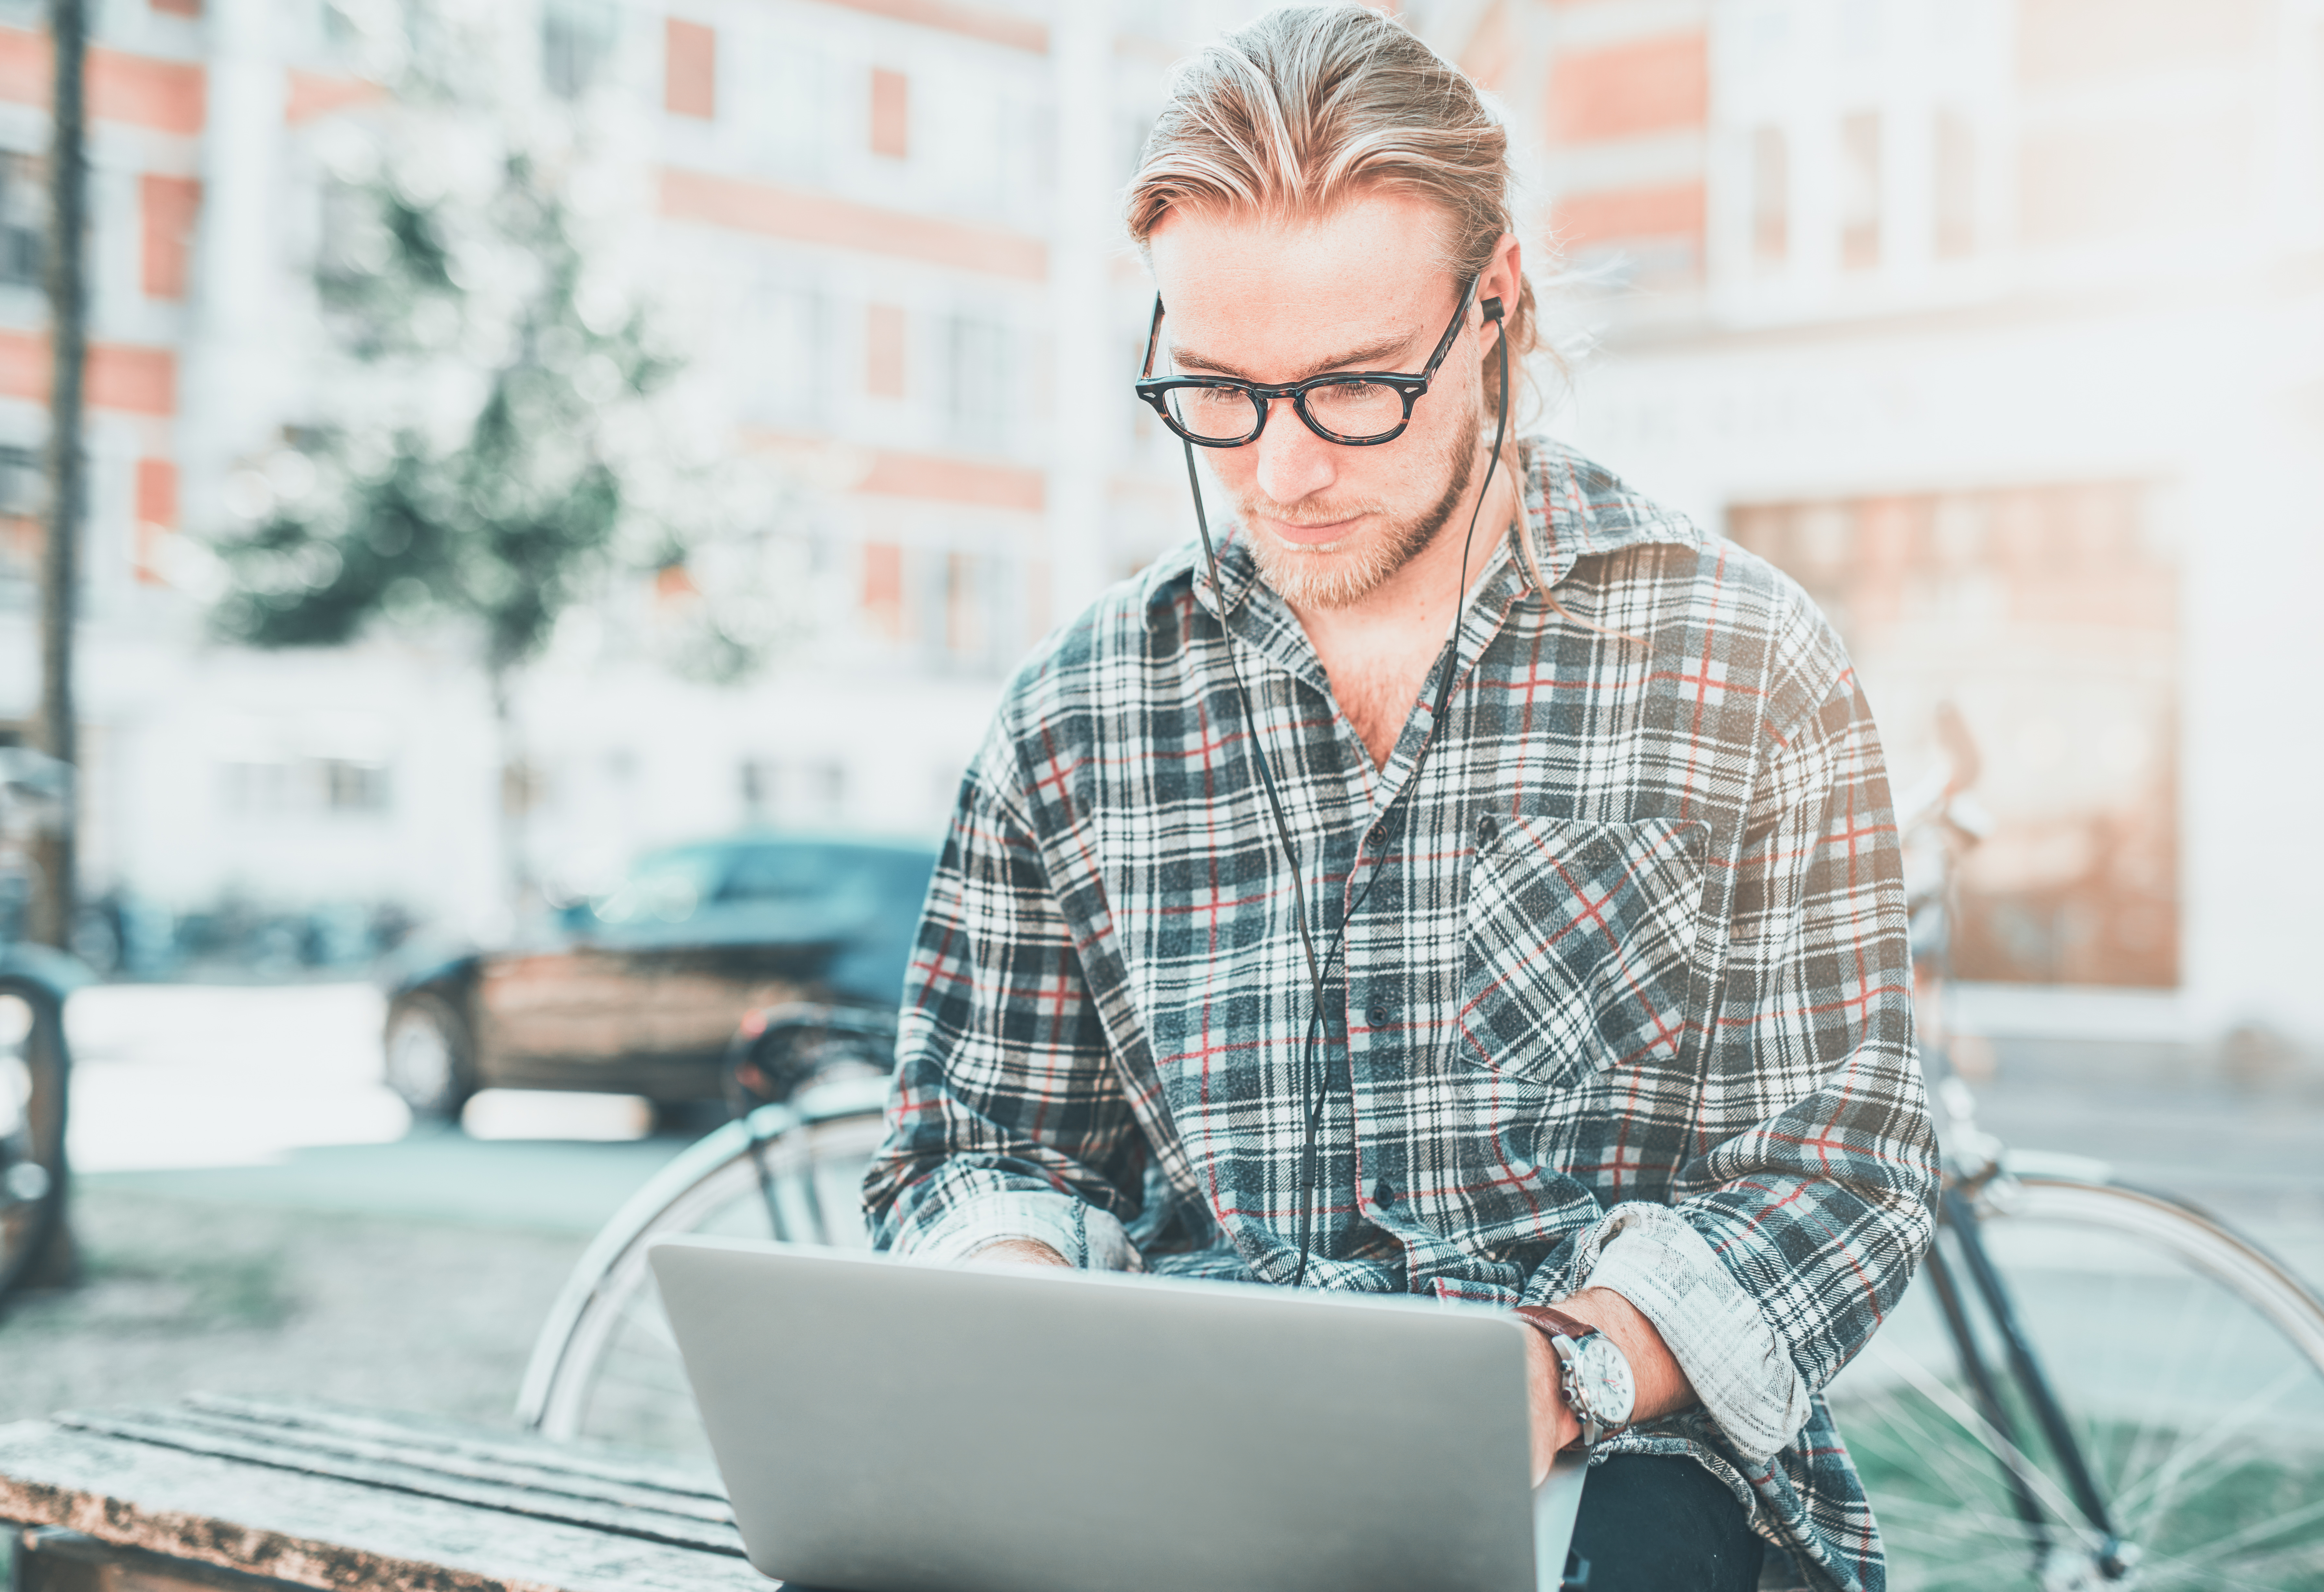 concentrated-young-man-with-his-laptop-PU7YVZA